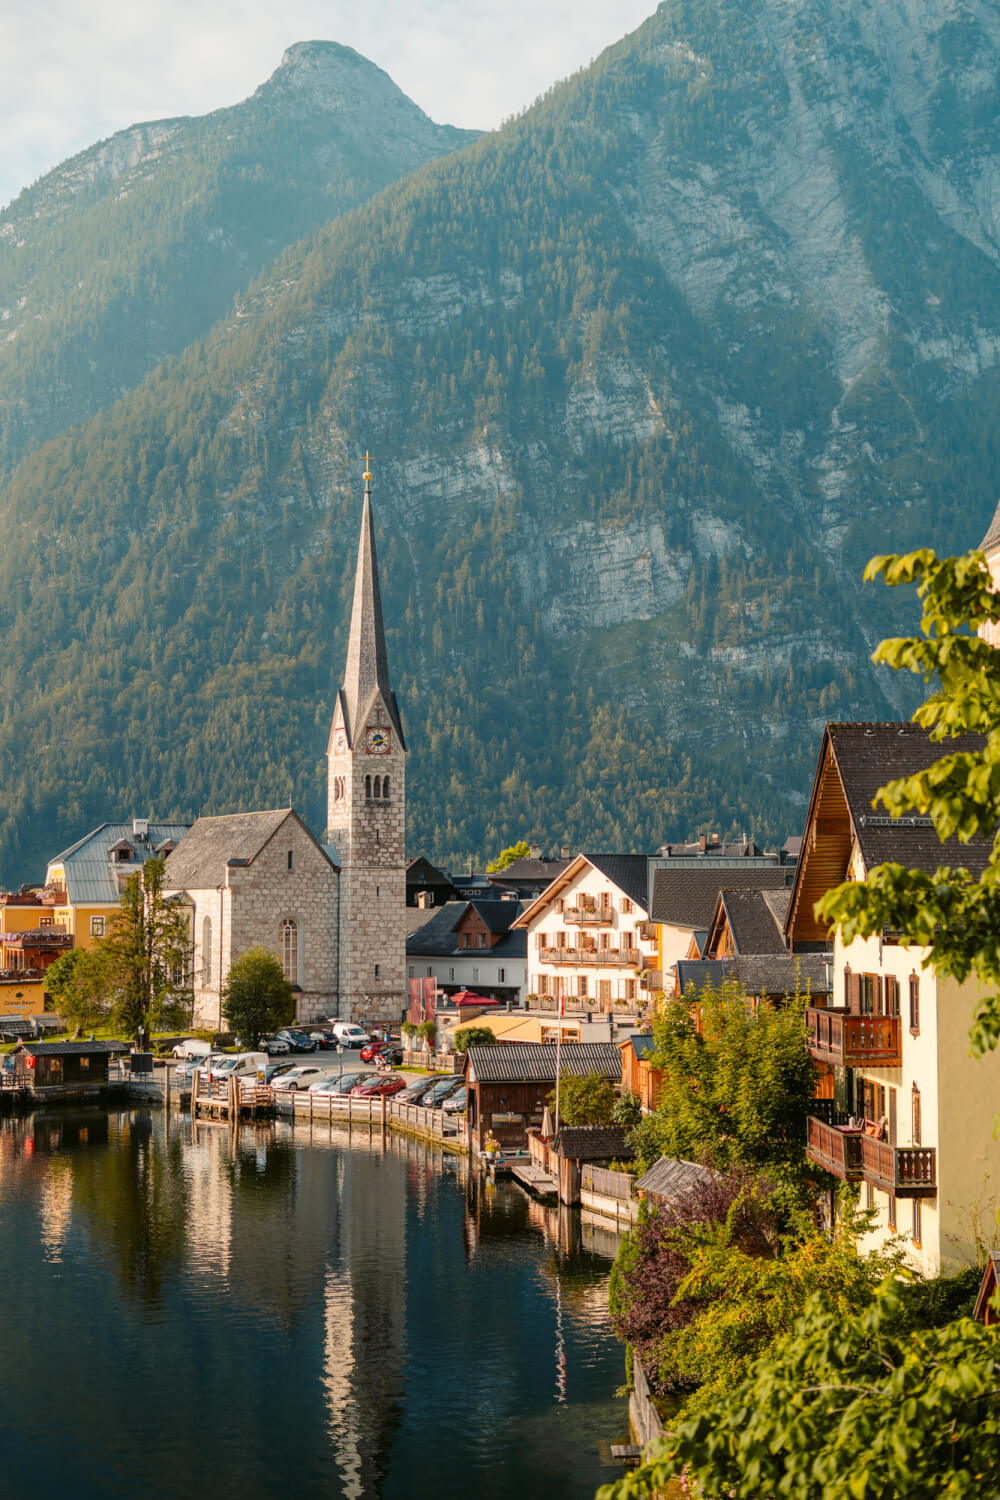 A view of the Hallstatt, Austria skyline from a famous panoramic viewpoint.